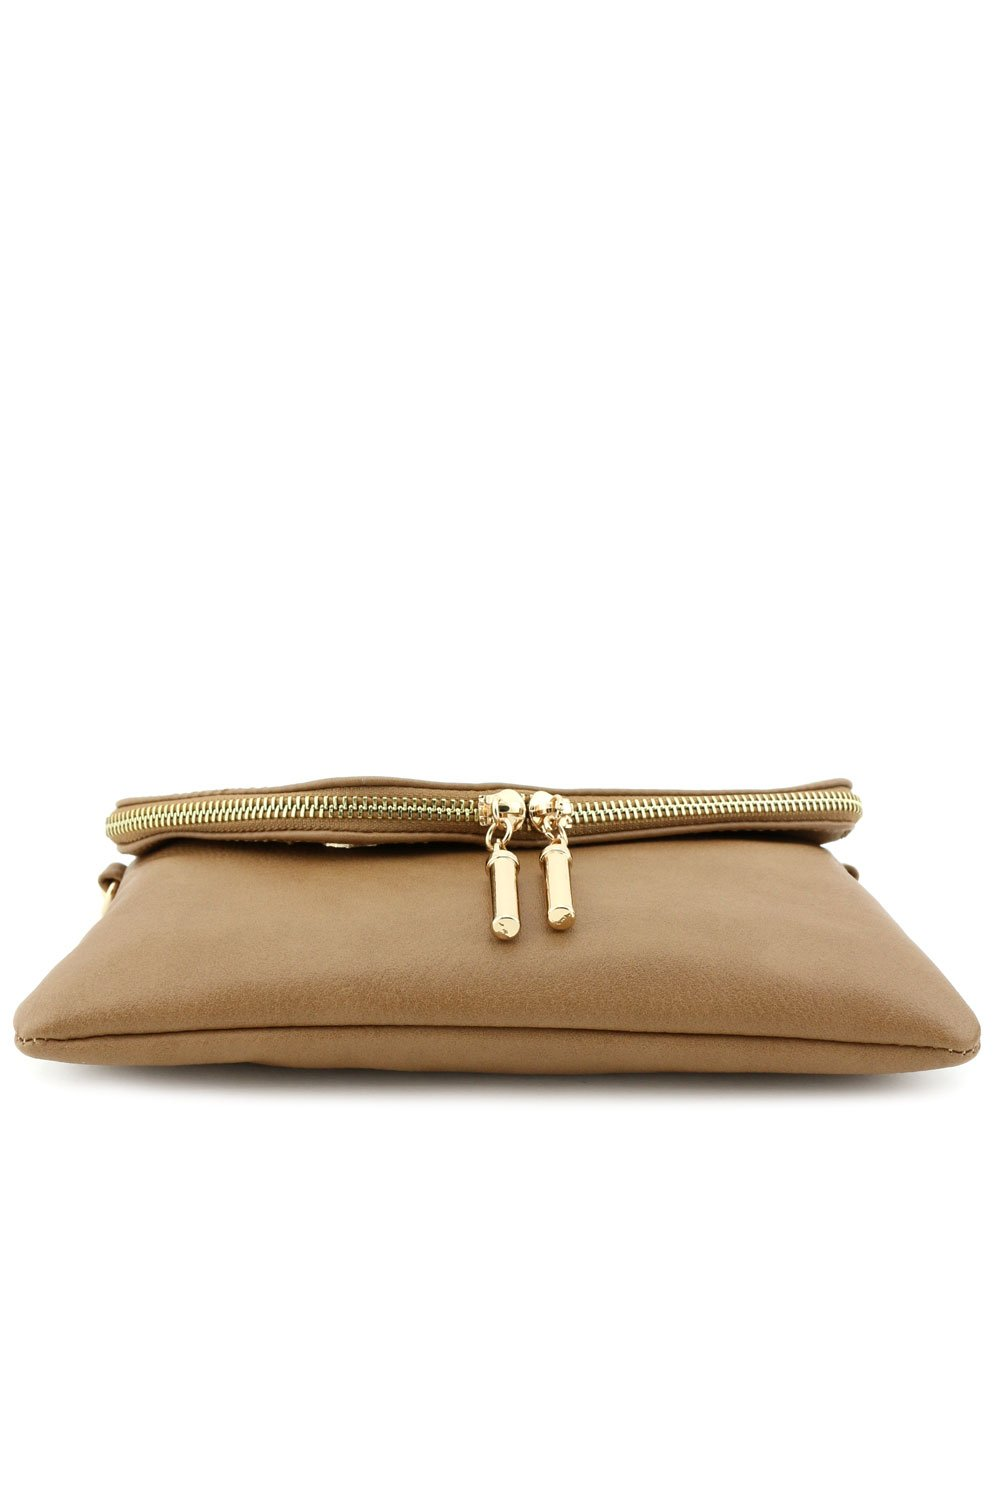 Envelope Wristlet Clutch Crossbody Bag with Chain Strap Stone by FashionPuzzle (Image #8)